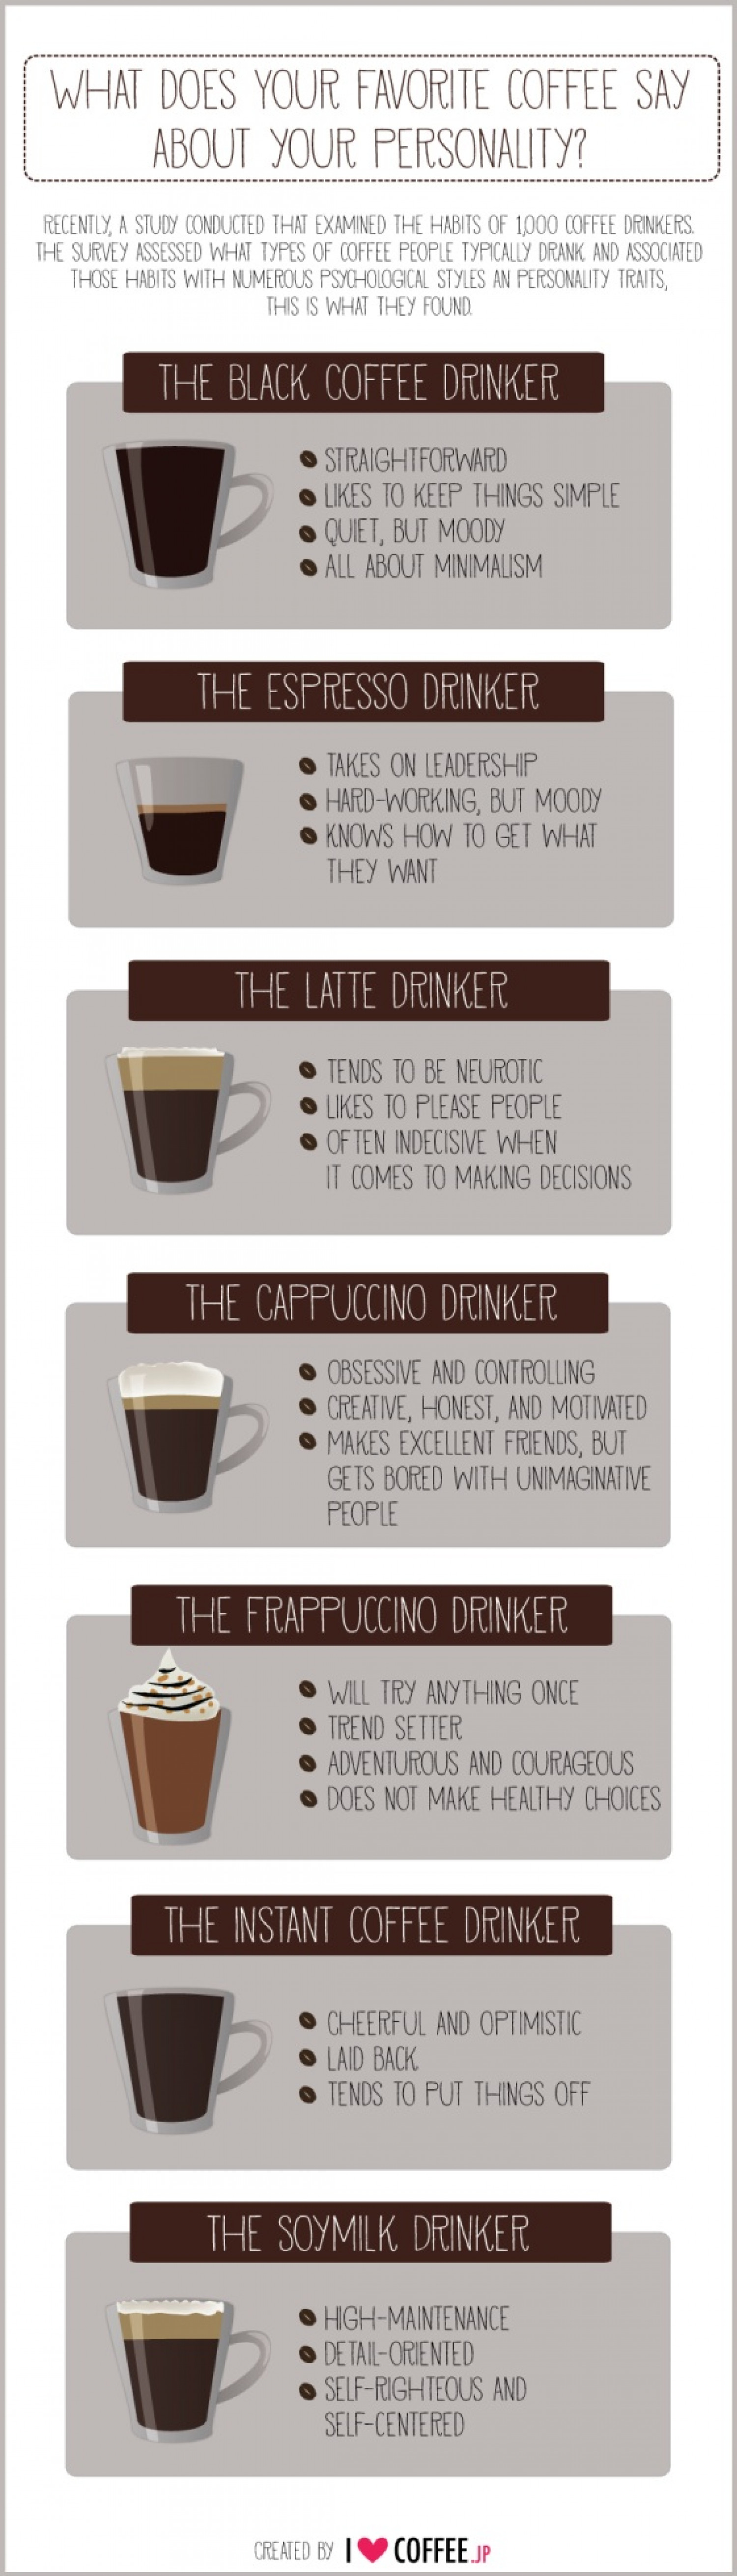 What Does Your Favorite Coffee Say About Your Personality? Infographic